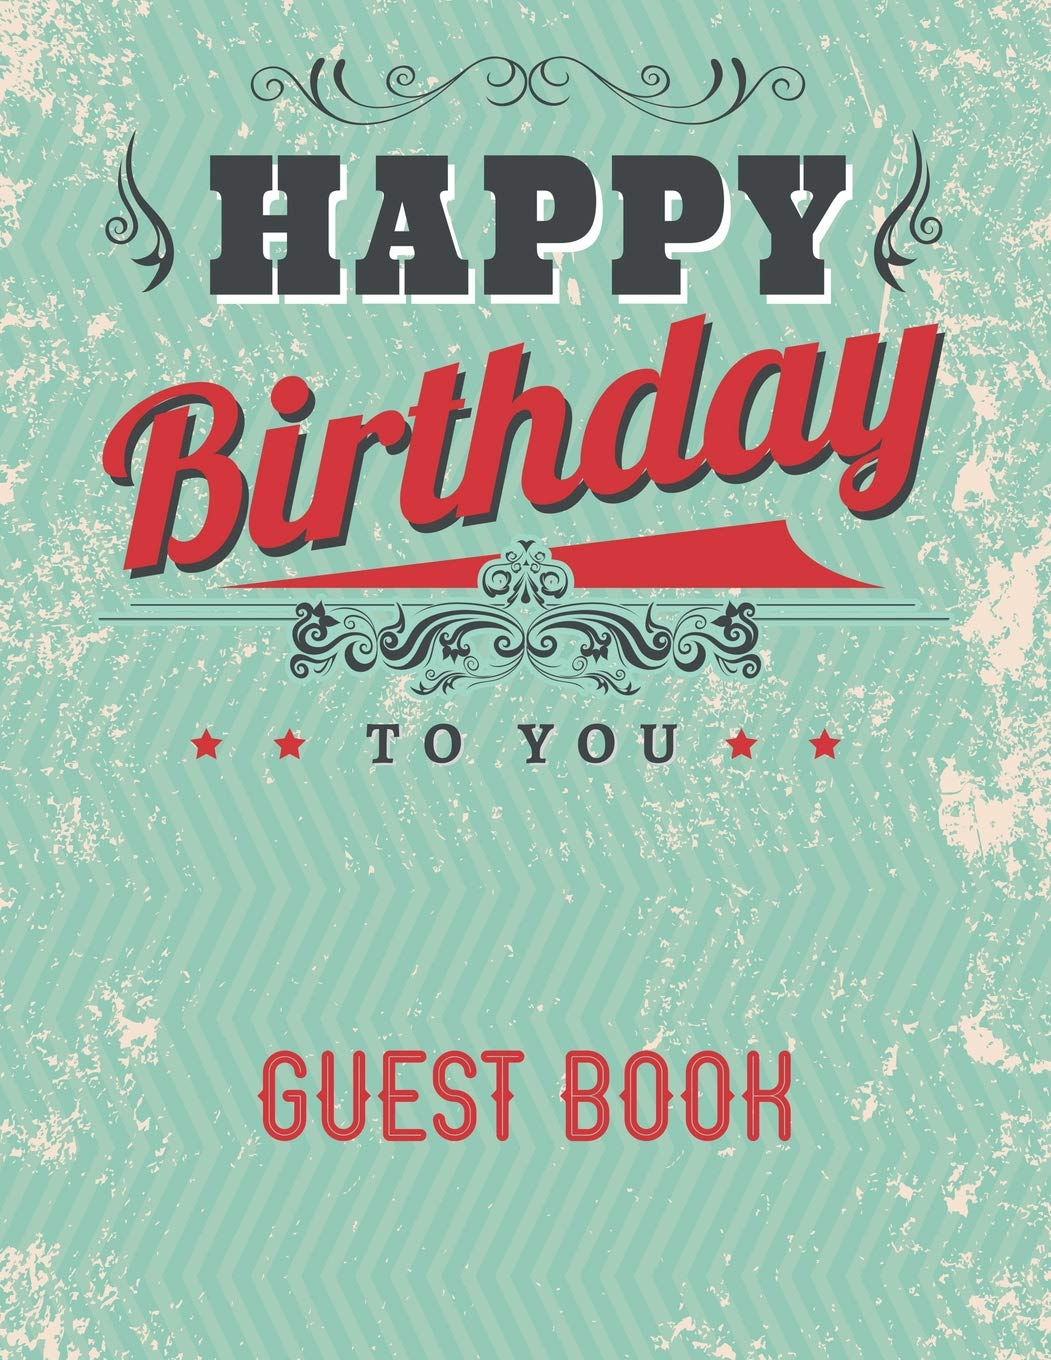 Amazon.com: Happy Birthday To You: Guest Book (9781072516064 ...